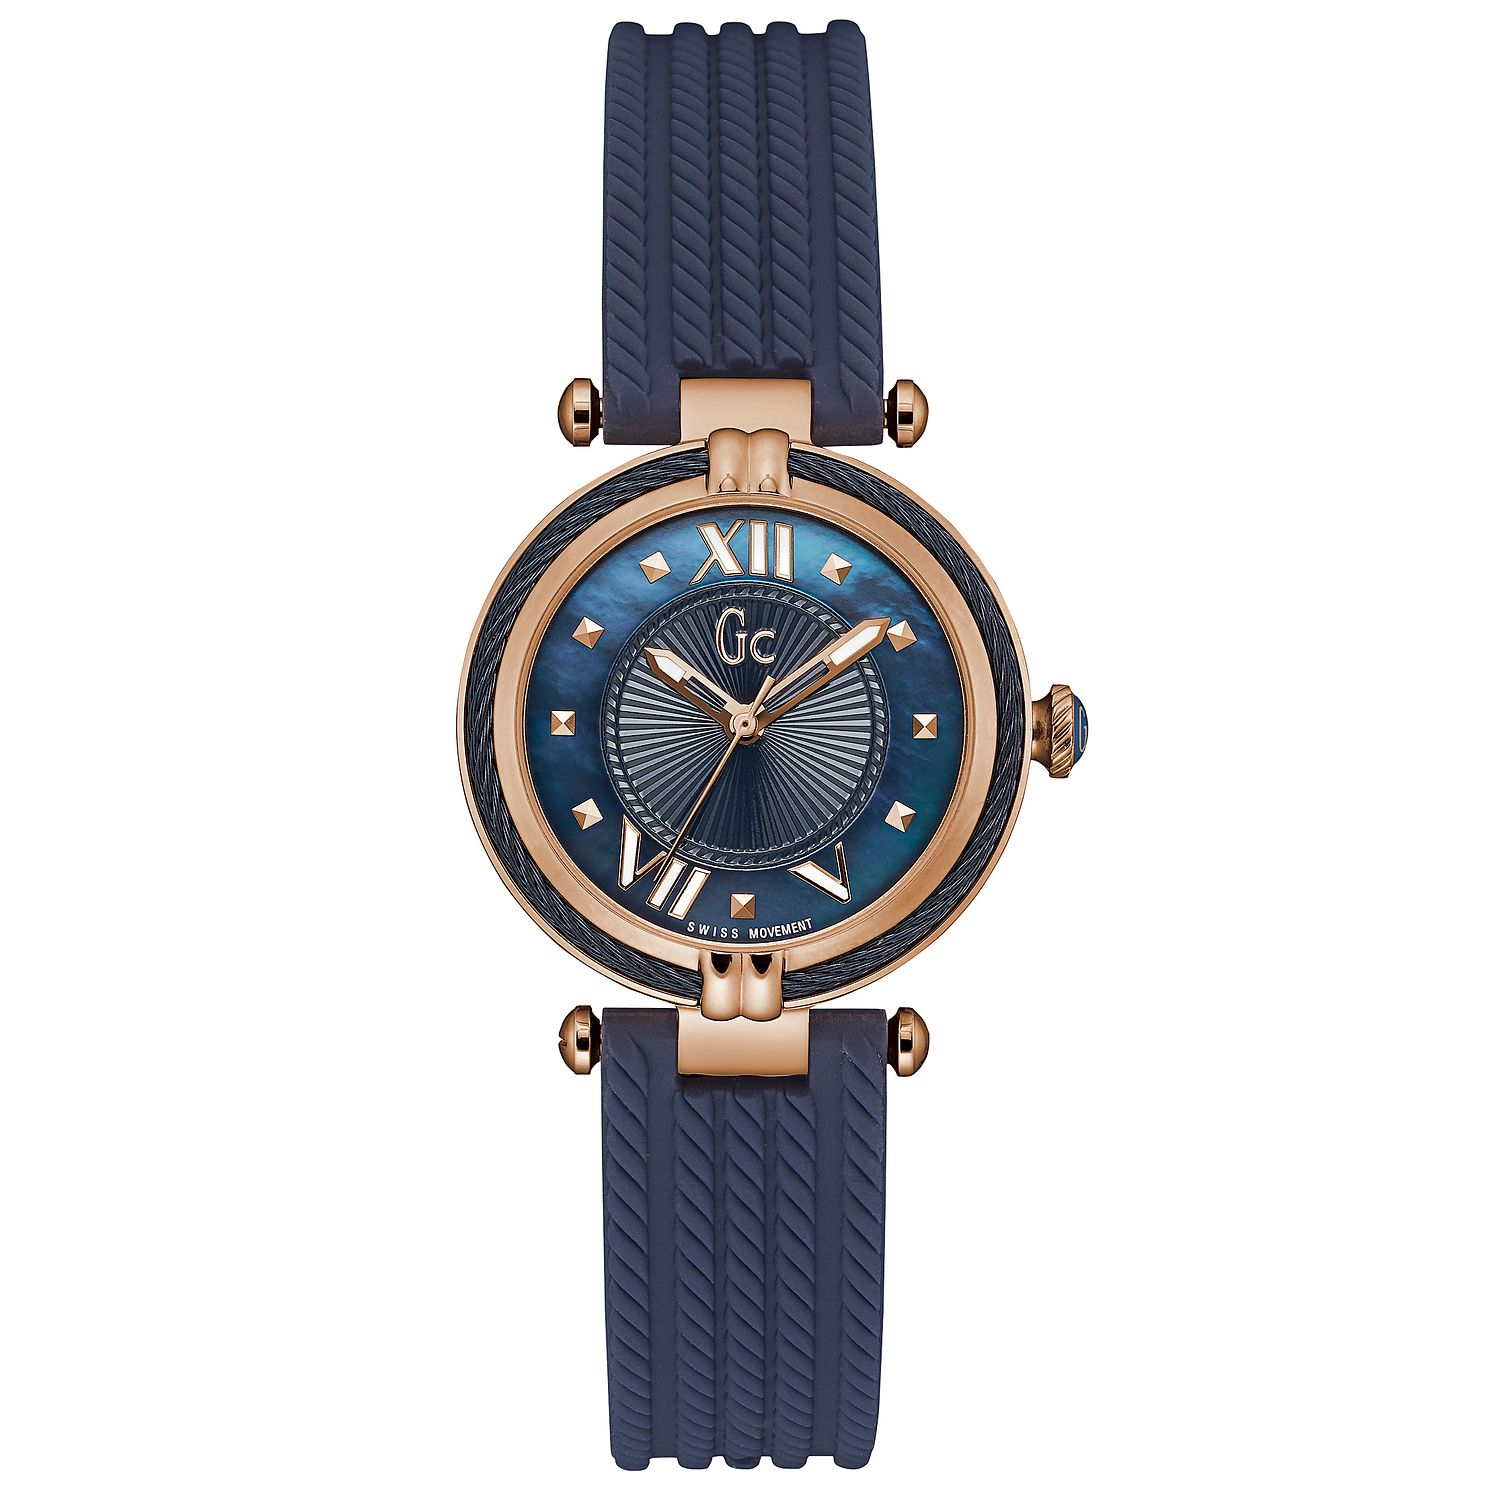 Gc Cablechic Ladies' Rose Gold Plated Strap Watch - Product number 6297161